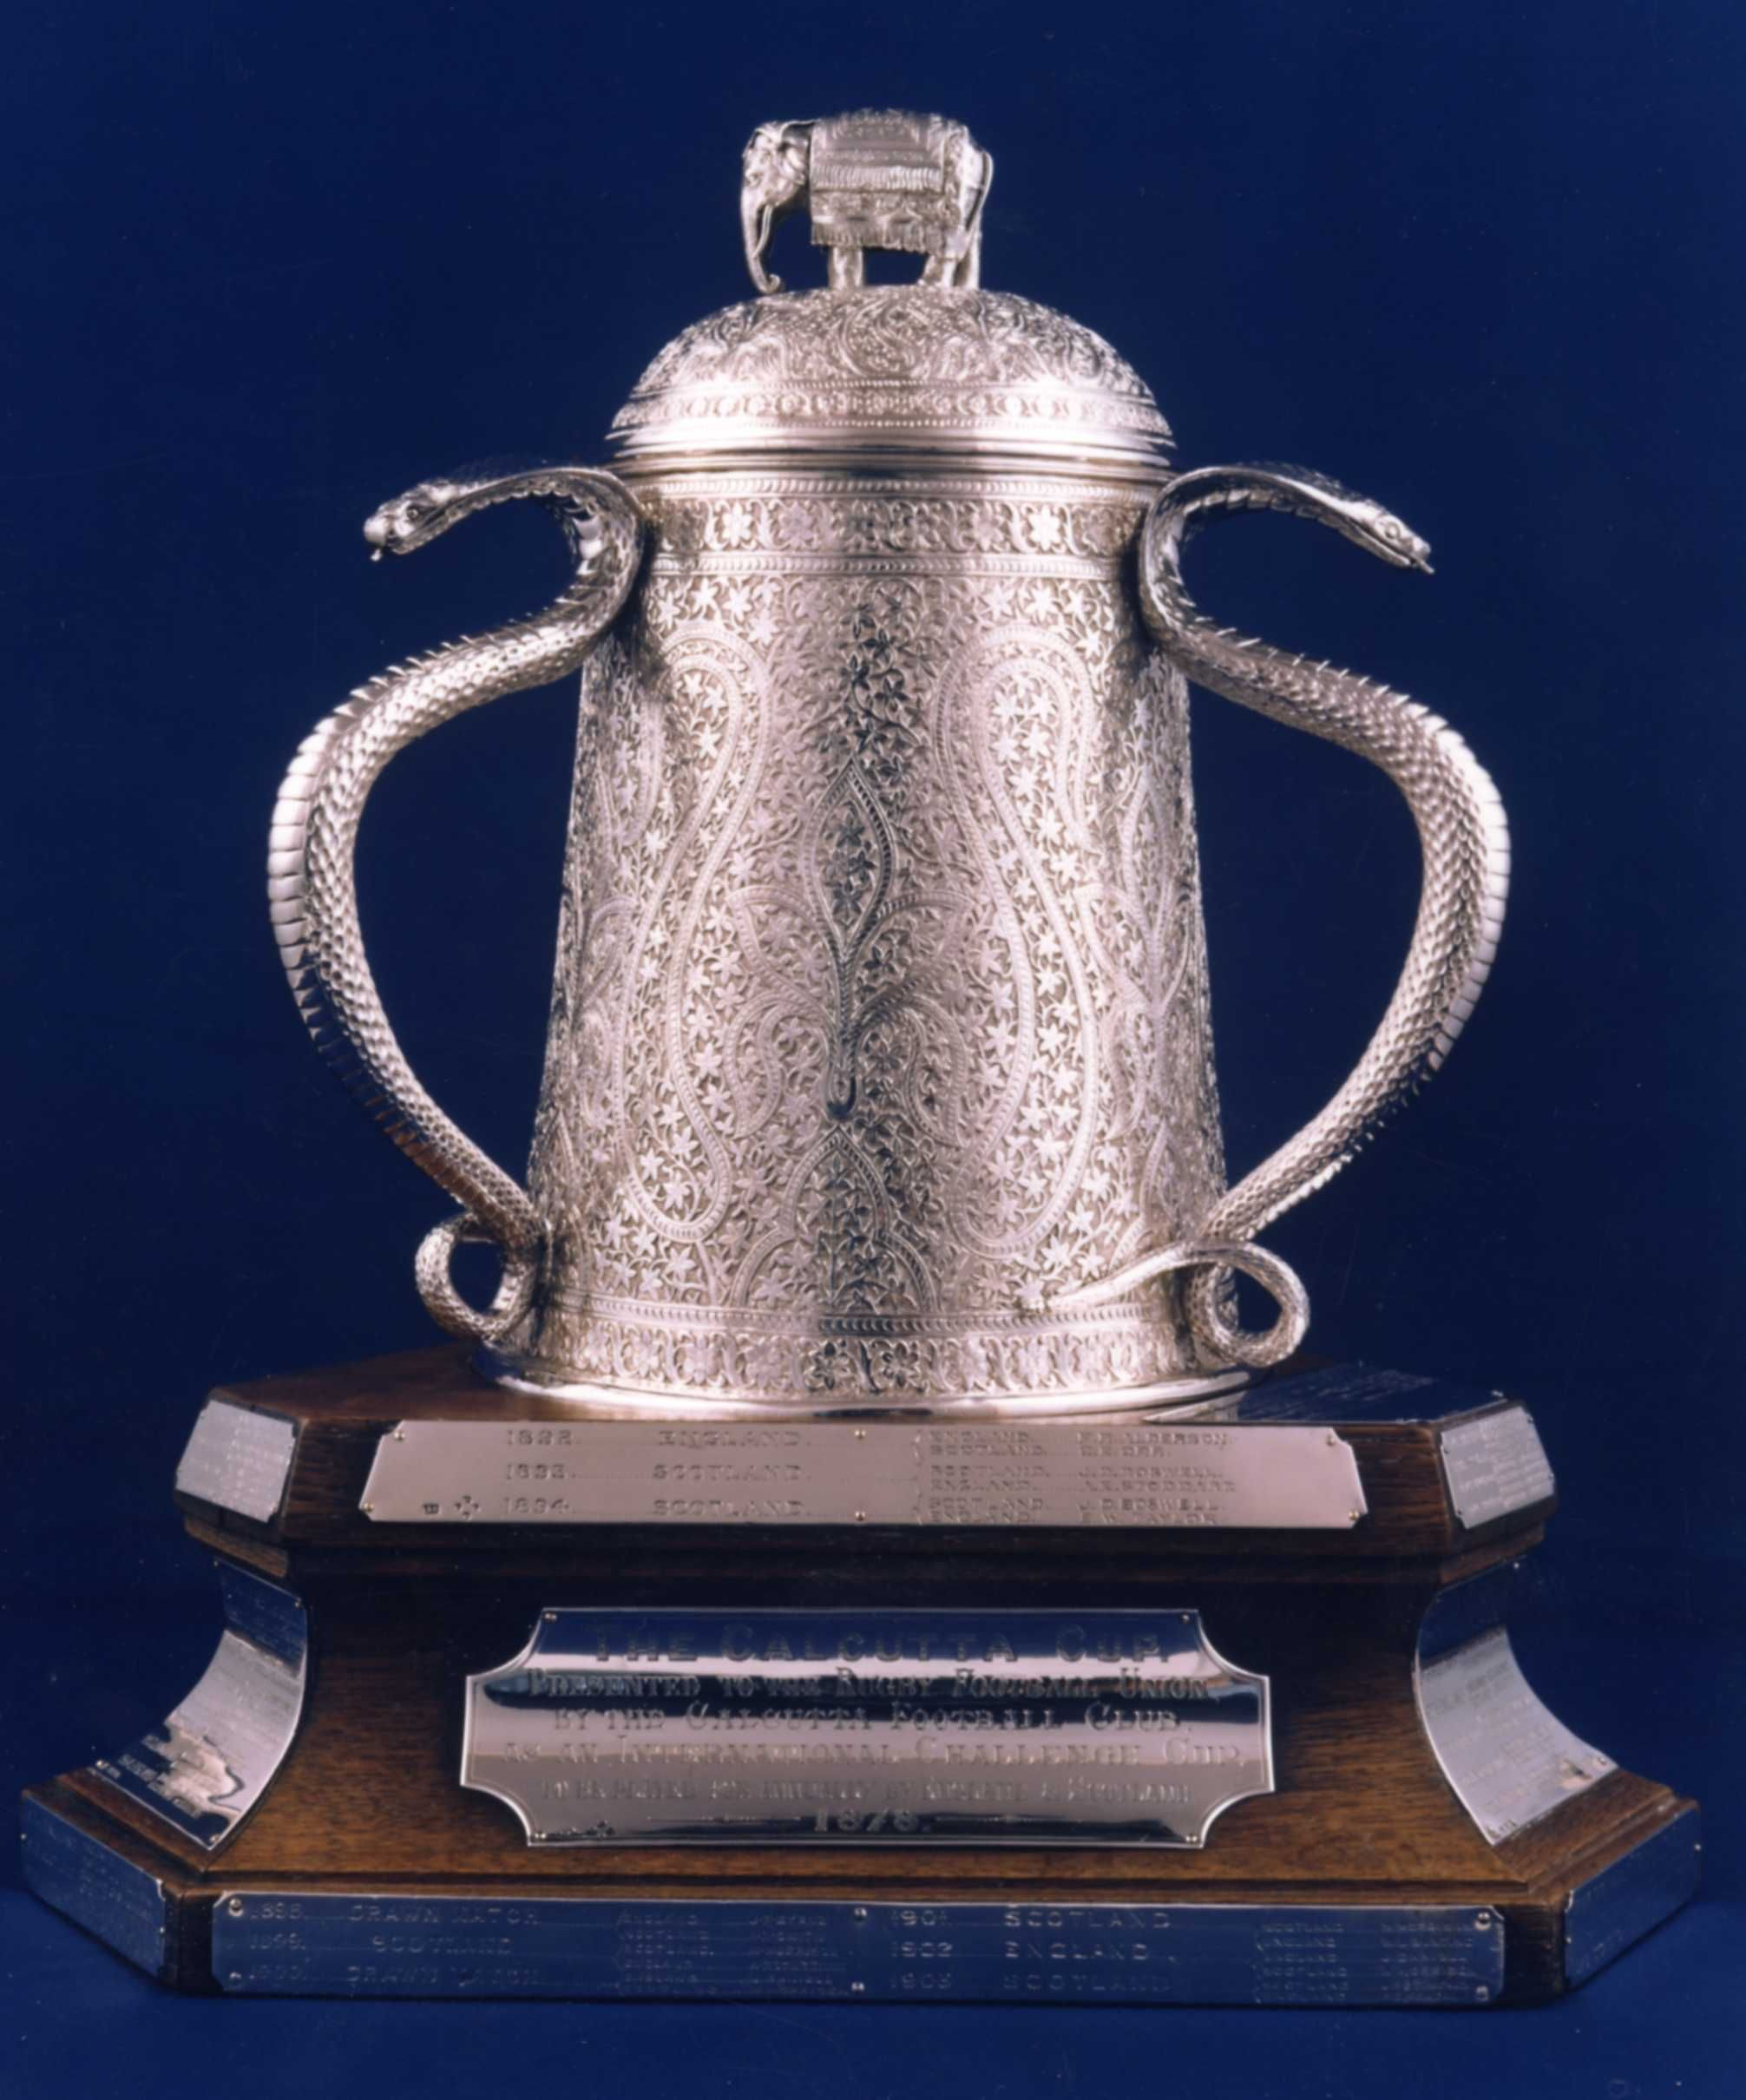 The Calcutta Cup It S Very Old And Is Awarded To Winner Of The England V Scotland Rugby Union Match Played Scotland Rugby Scottish Rugby England Rugby Union